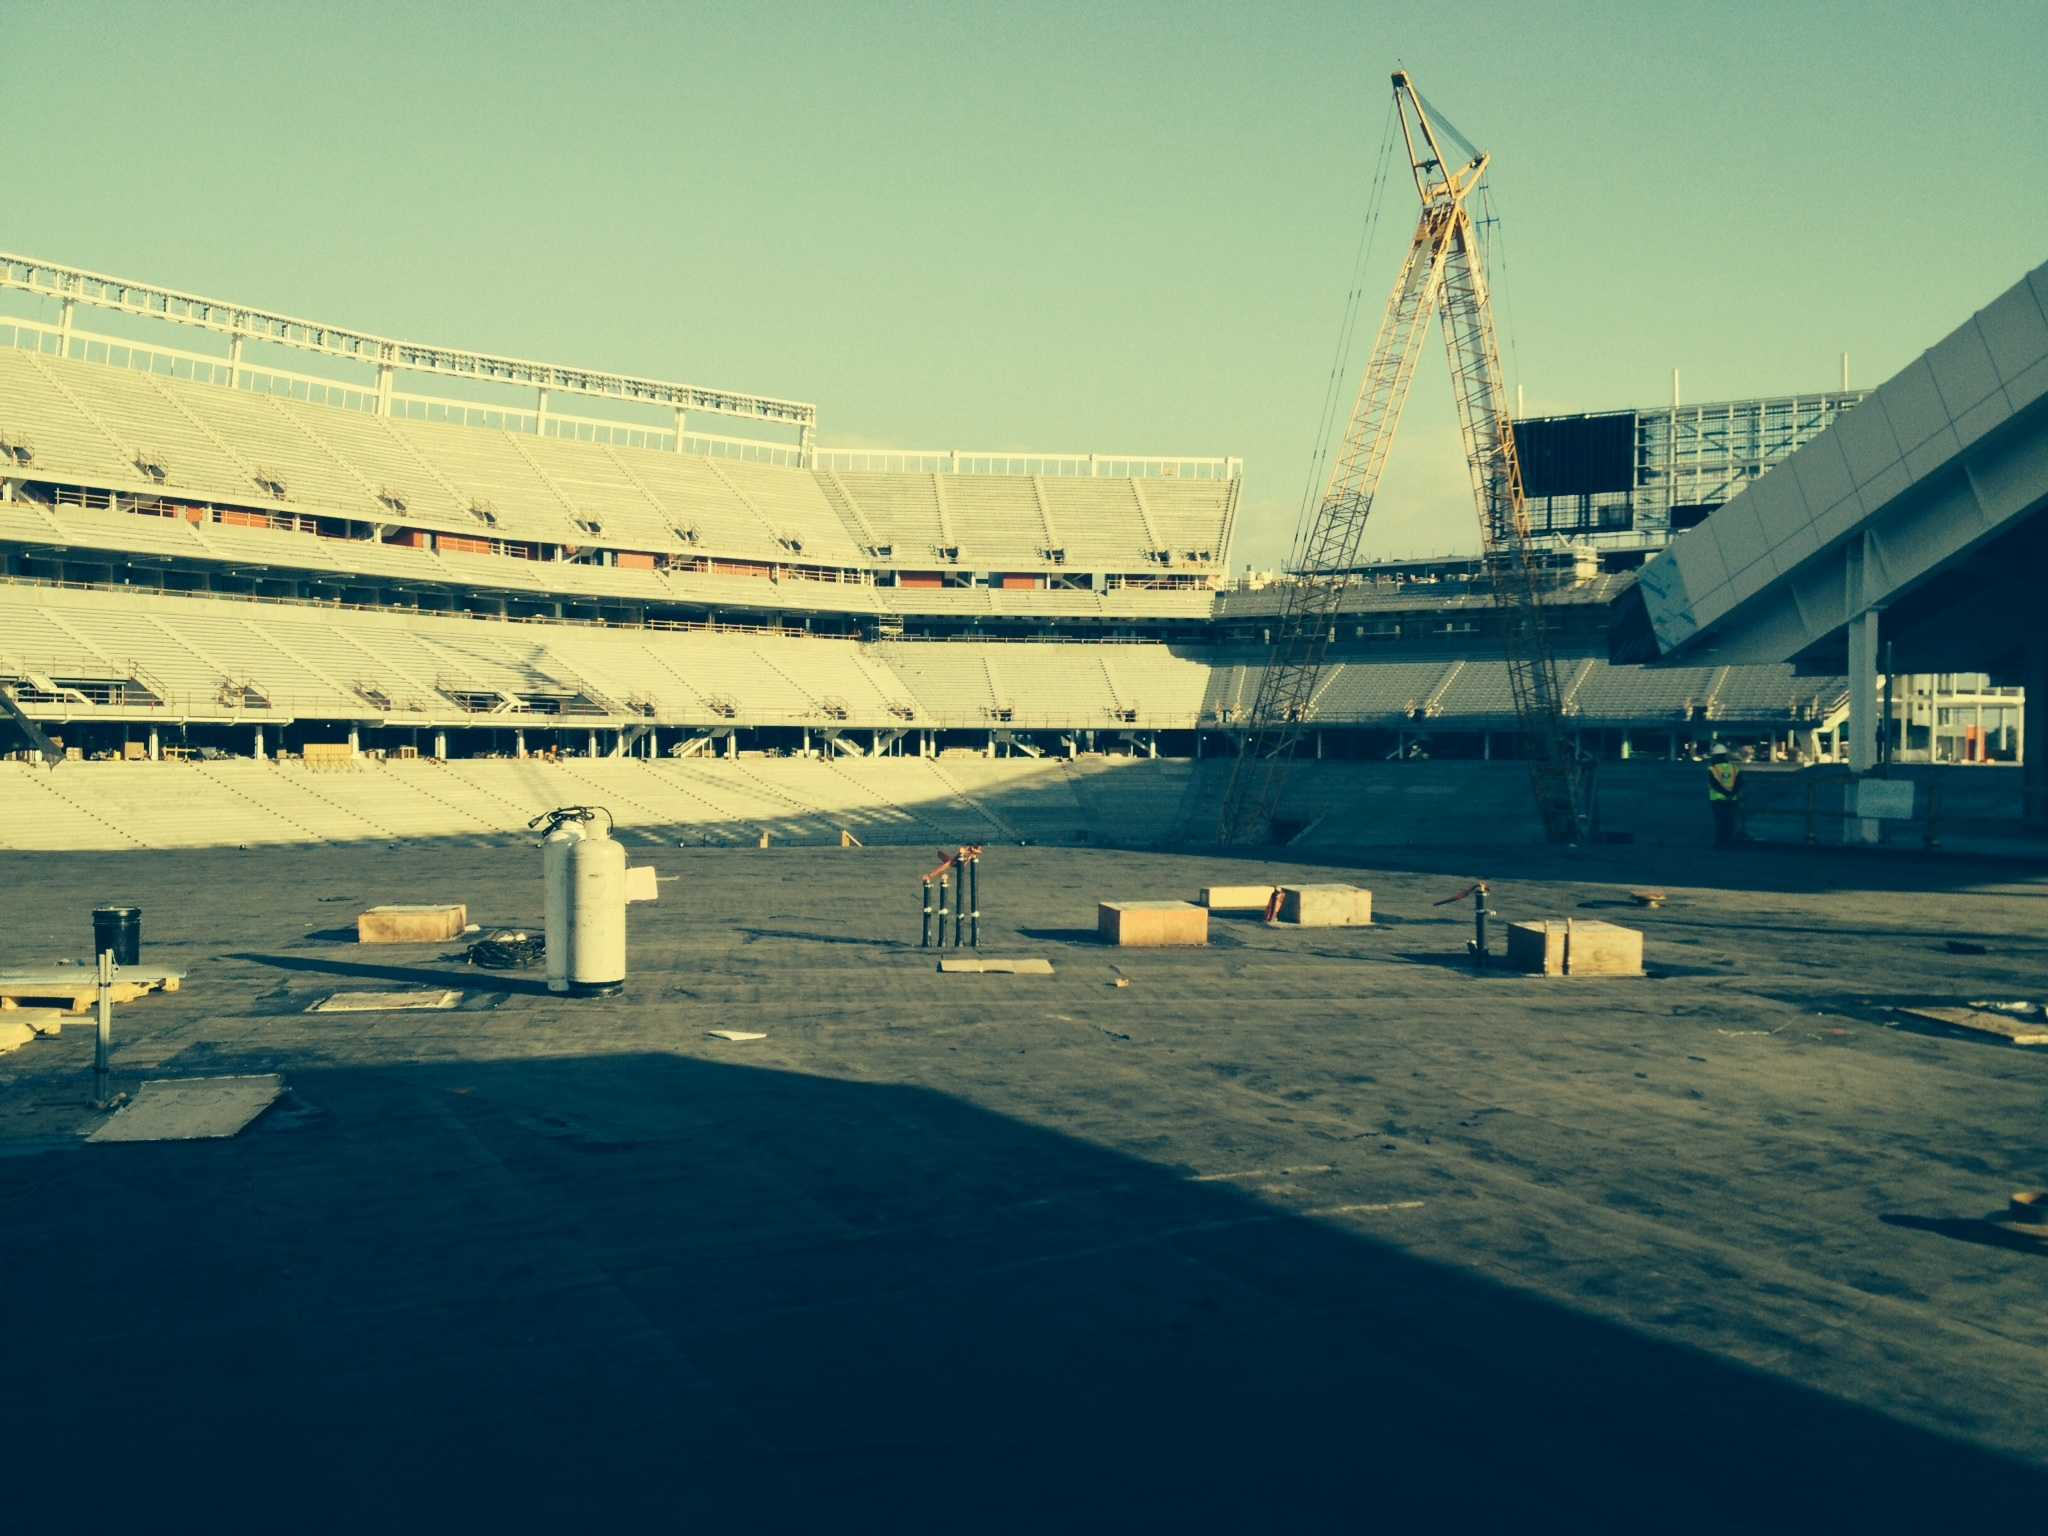 The new 49ers stadium, Levi's stadium, is scheduled to open before the start of the 2014 season.  The 49ers will move from San Francisco to Santa Clara.